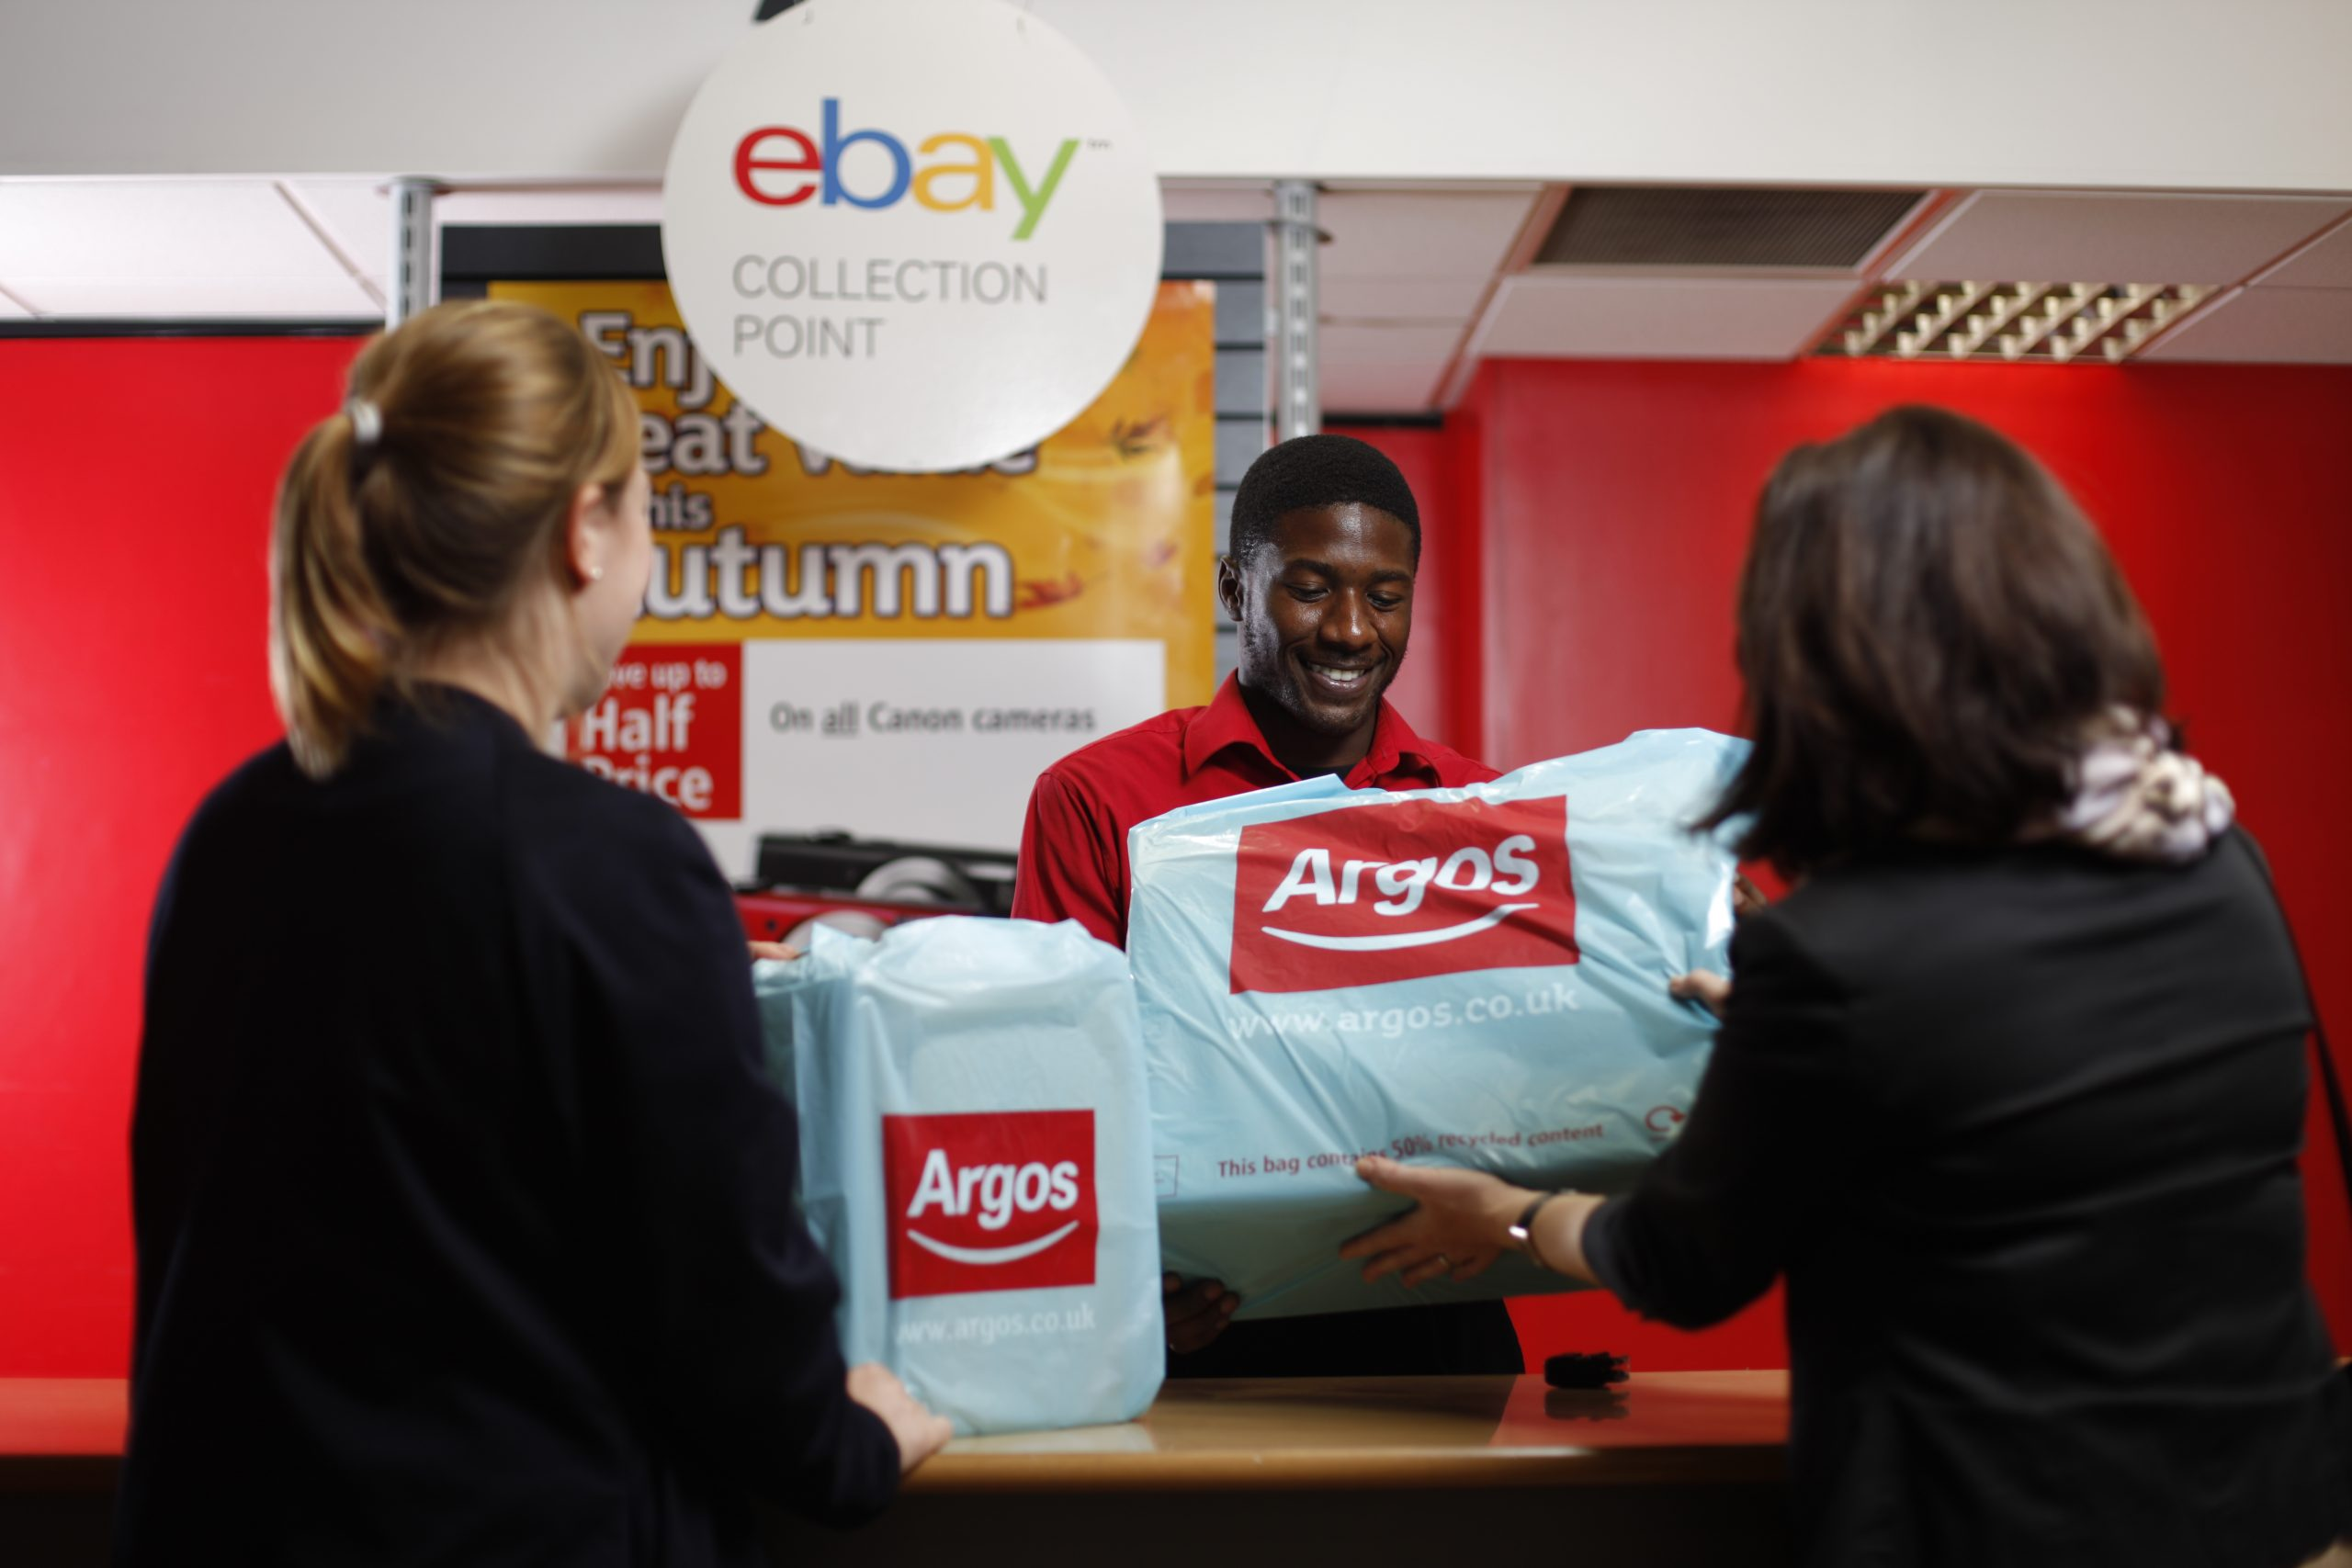 Argos and eBay to discontinue drop-off pilot